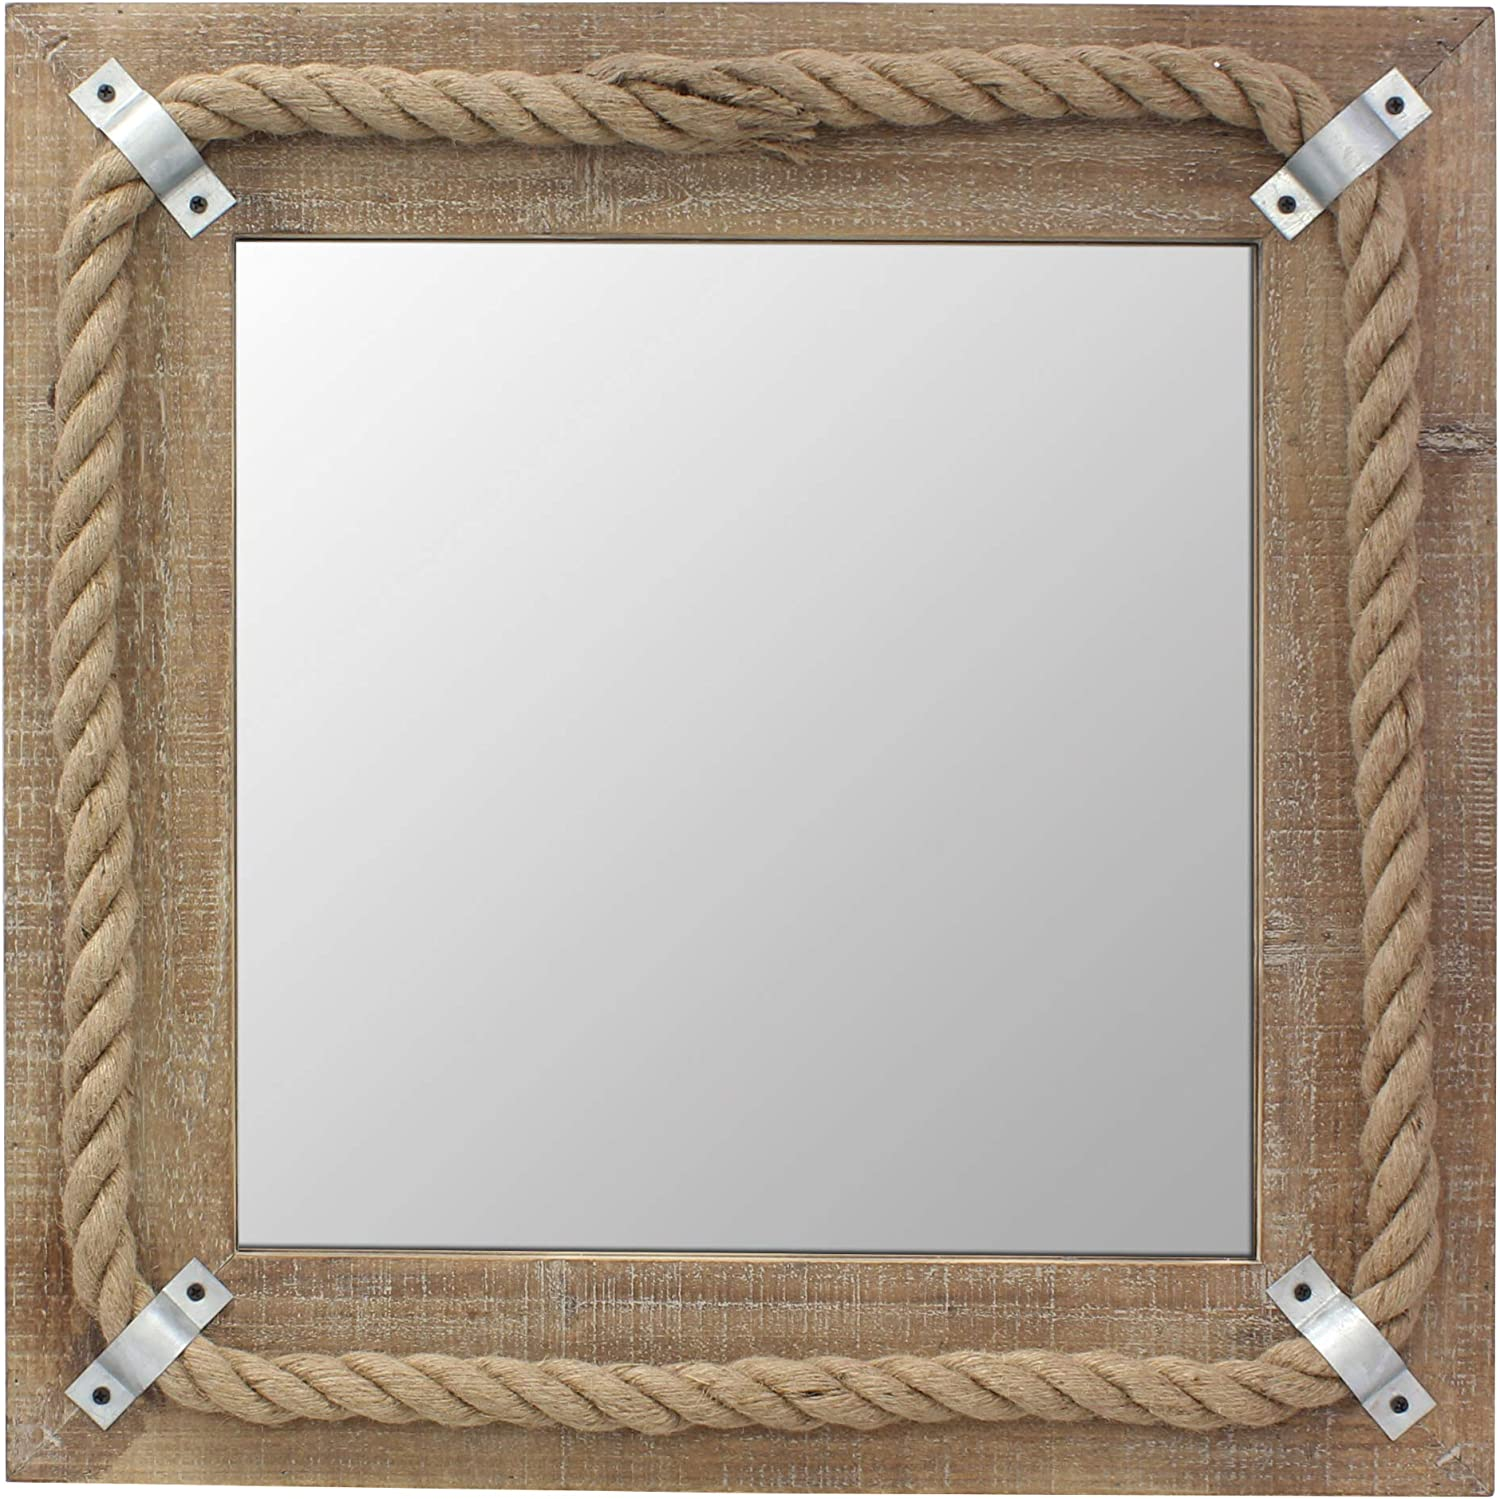 Amazon Com Stonebriar Square Wooden Mirror With Nautical Rope Detail Beachside Home Décor For Kitchen Living Room Bathroom And Hallway Home Kitchen